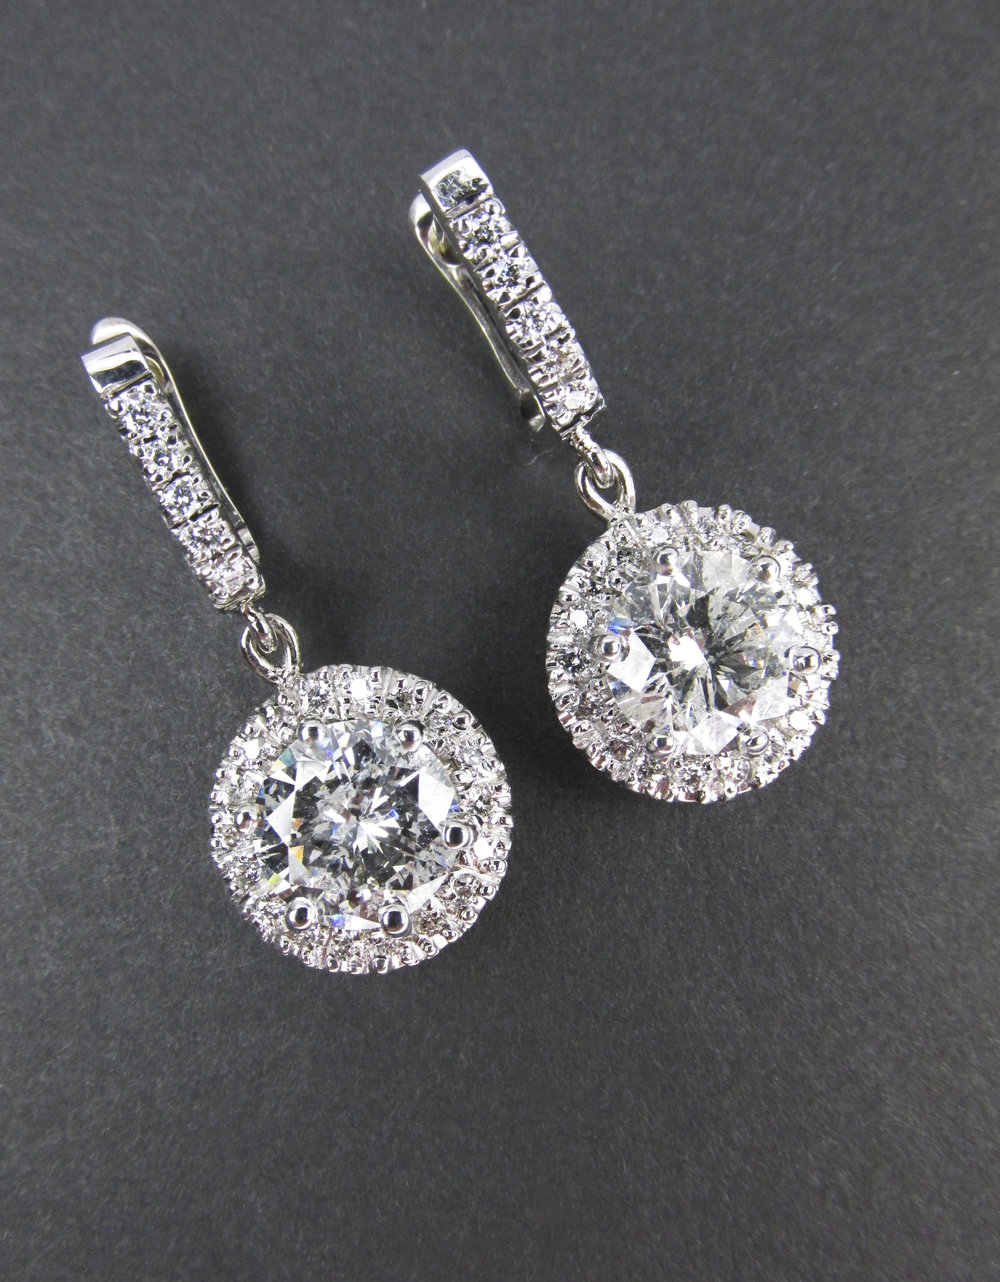 Dangle Diamond Earrings with Halos